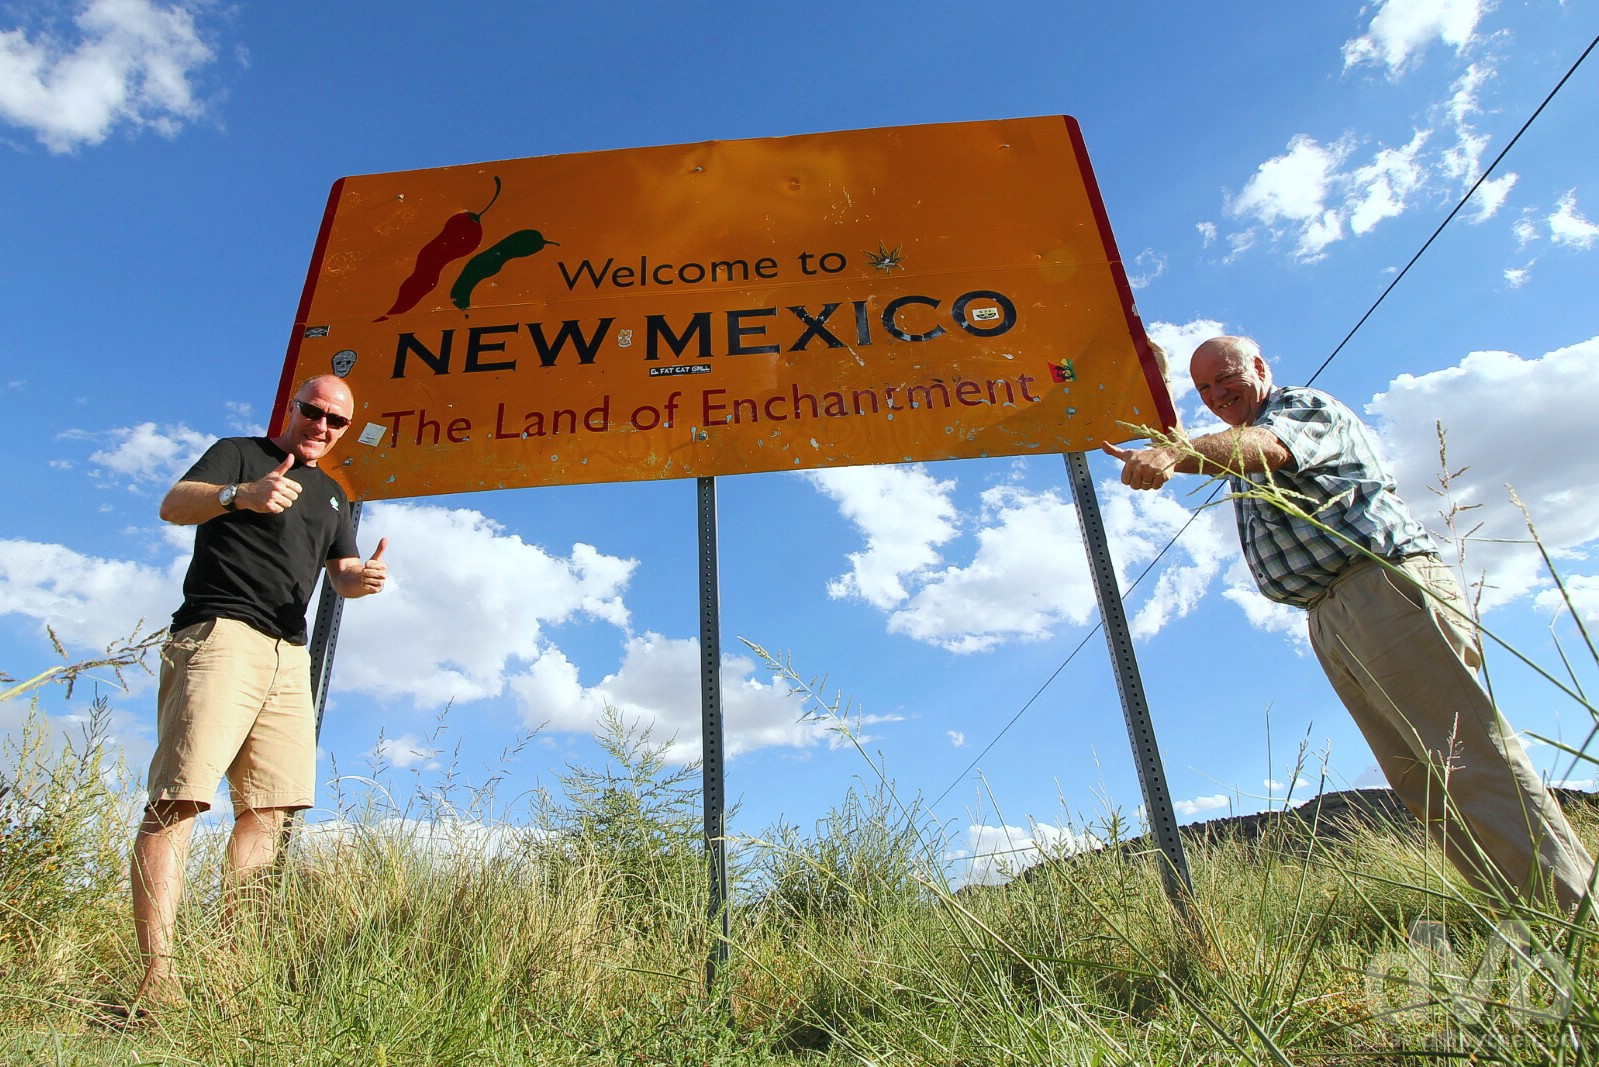 Welcome to New Mexico. At the Arizona/New Mexico state line on US Route 64. September 11, 2016.